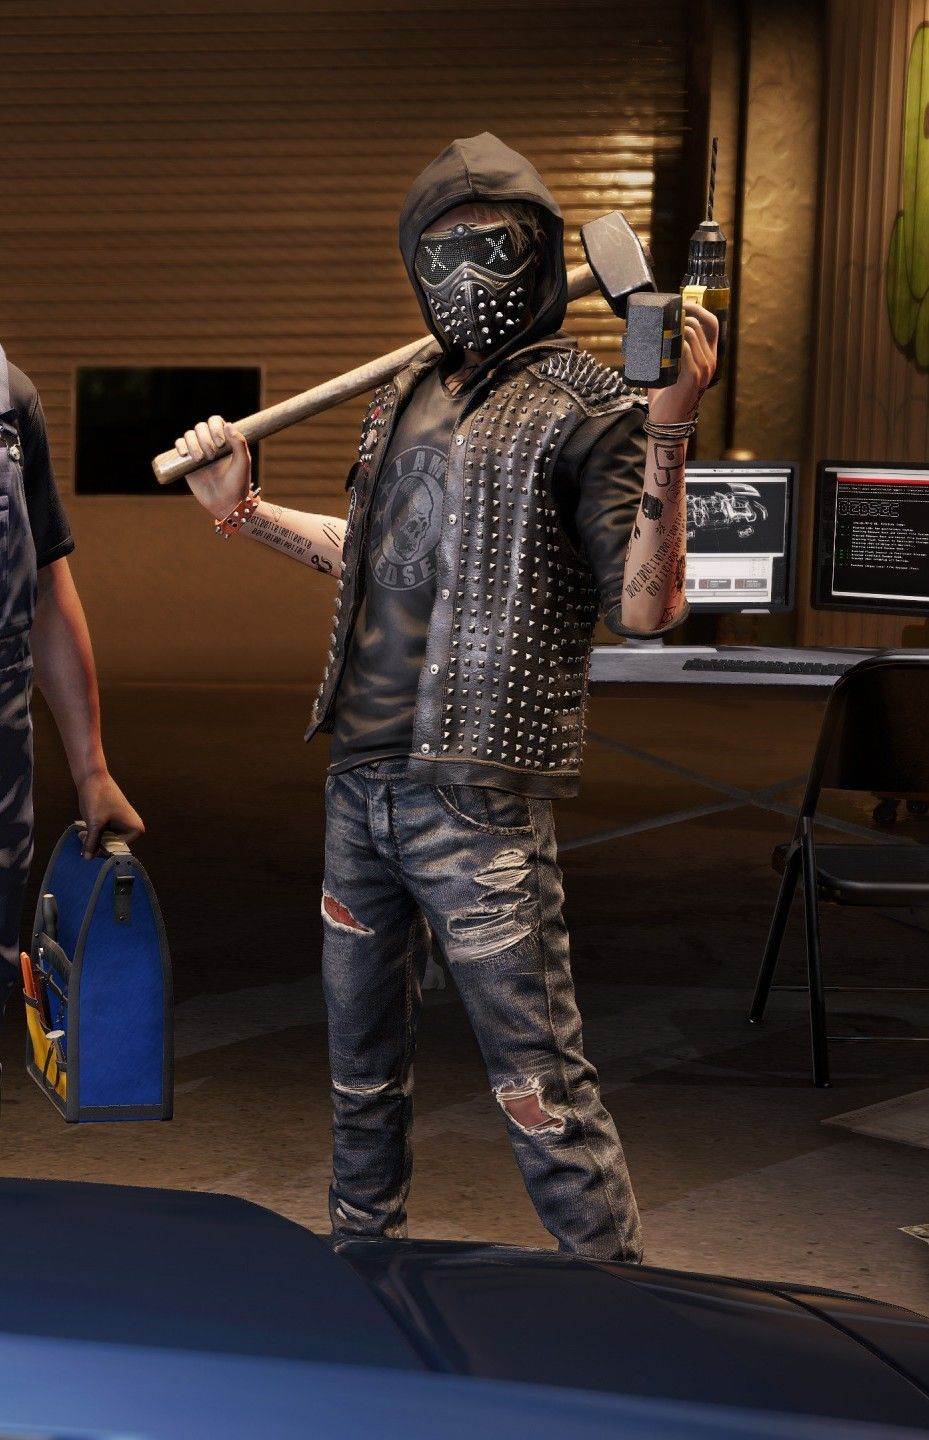 Wrench Watch Dogs 2 Watch Dogs Art Watch Dogs Wrench Watch Dogs 2